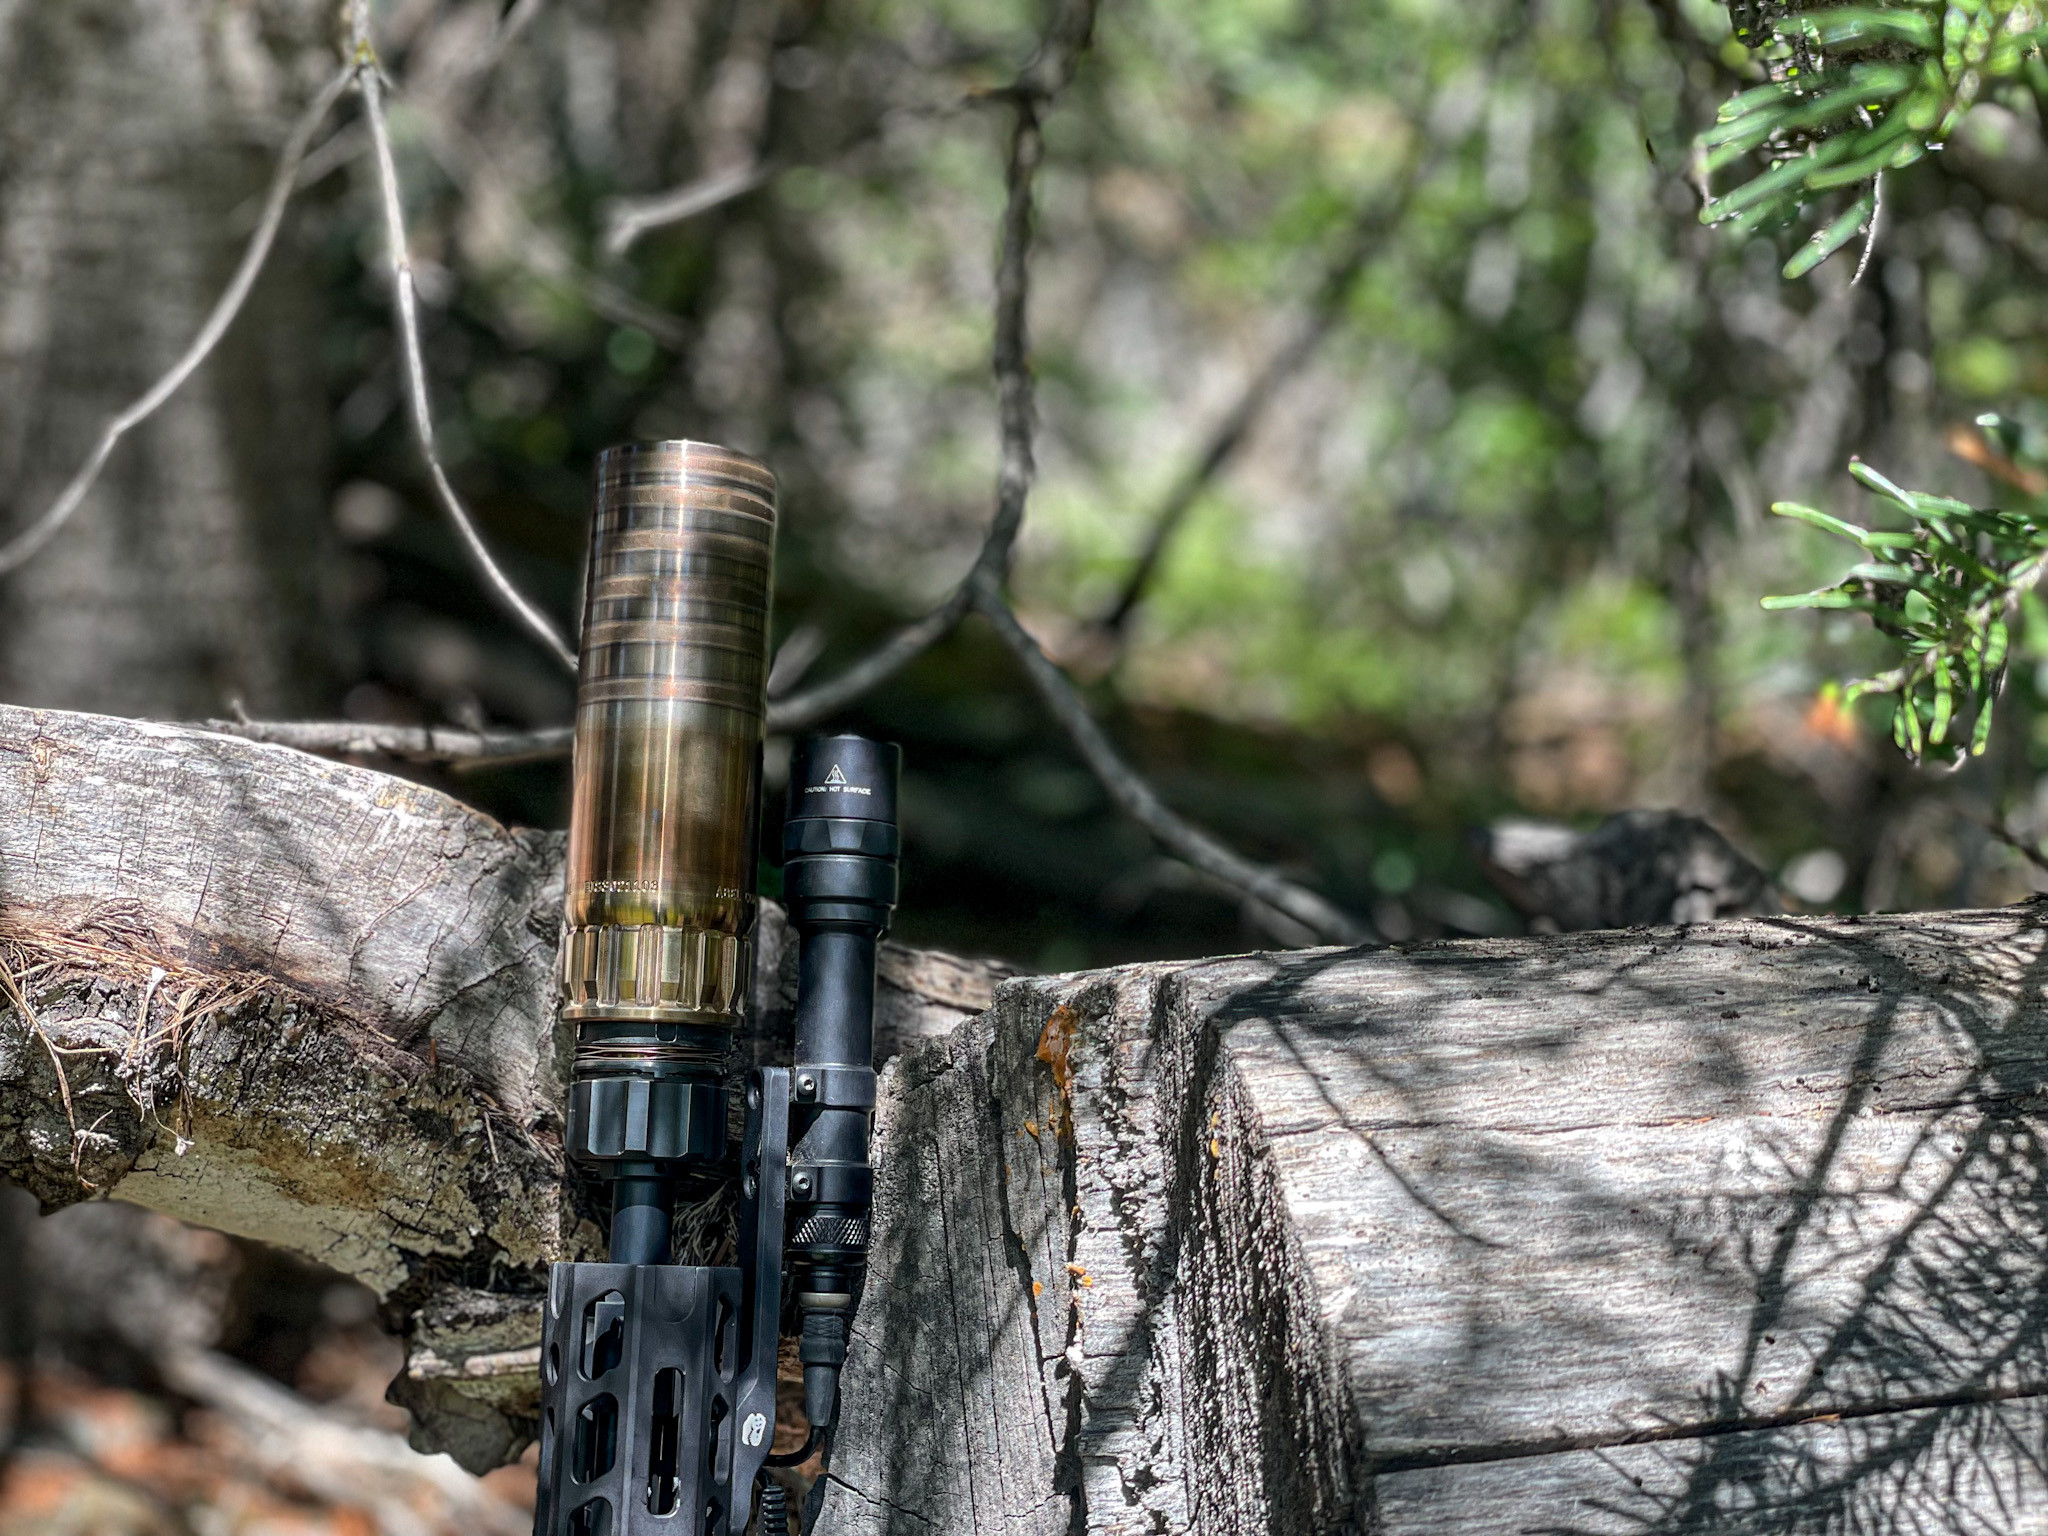 Buy the Abel Company Suppressor named biscuit now